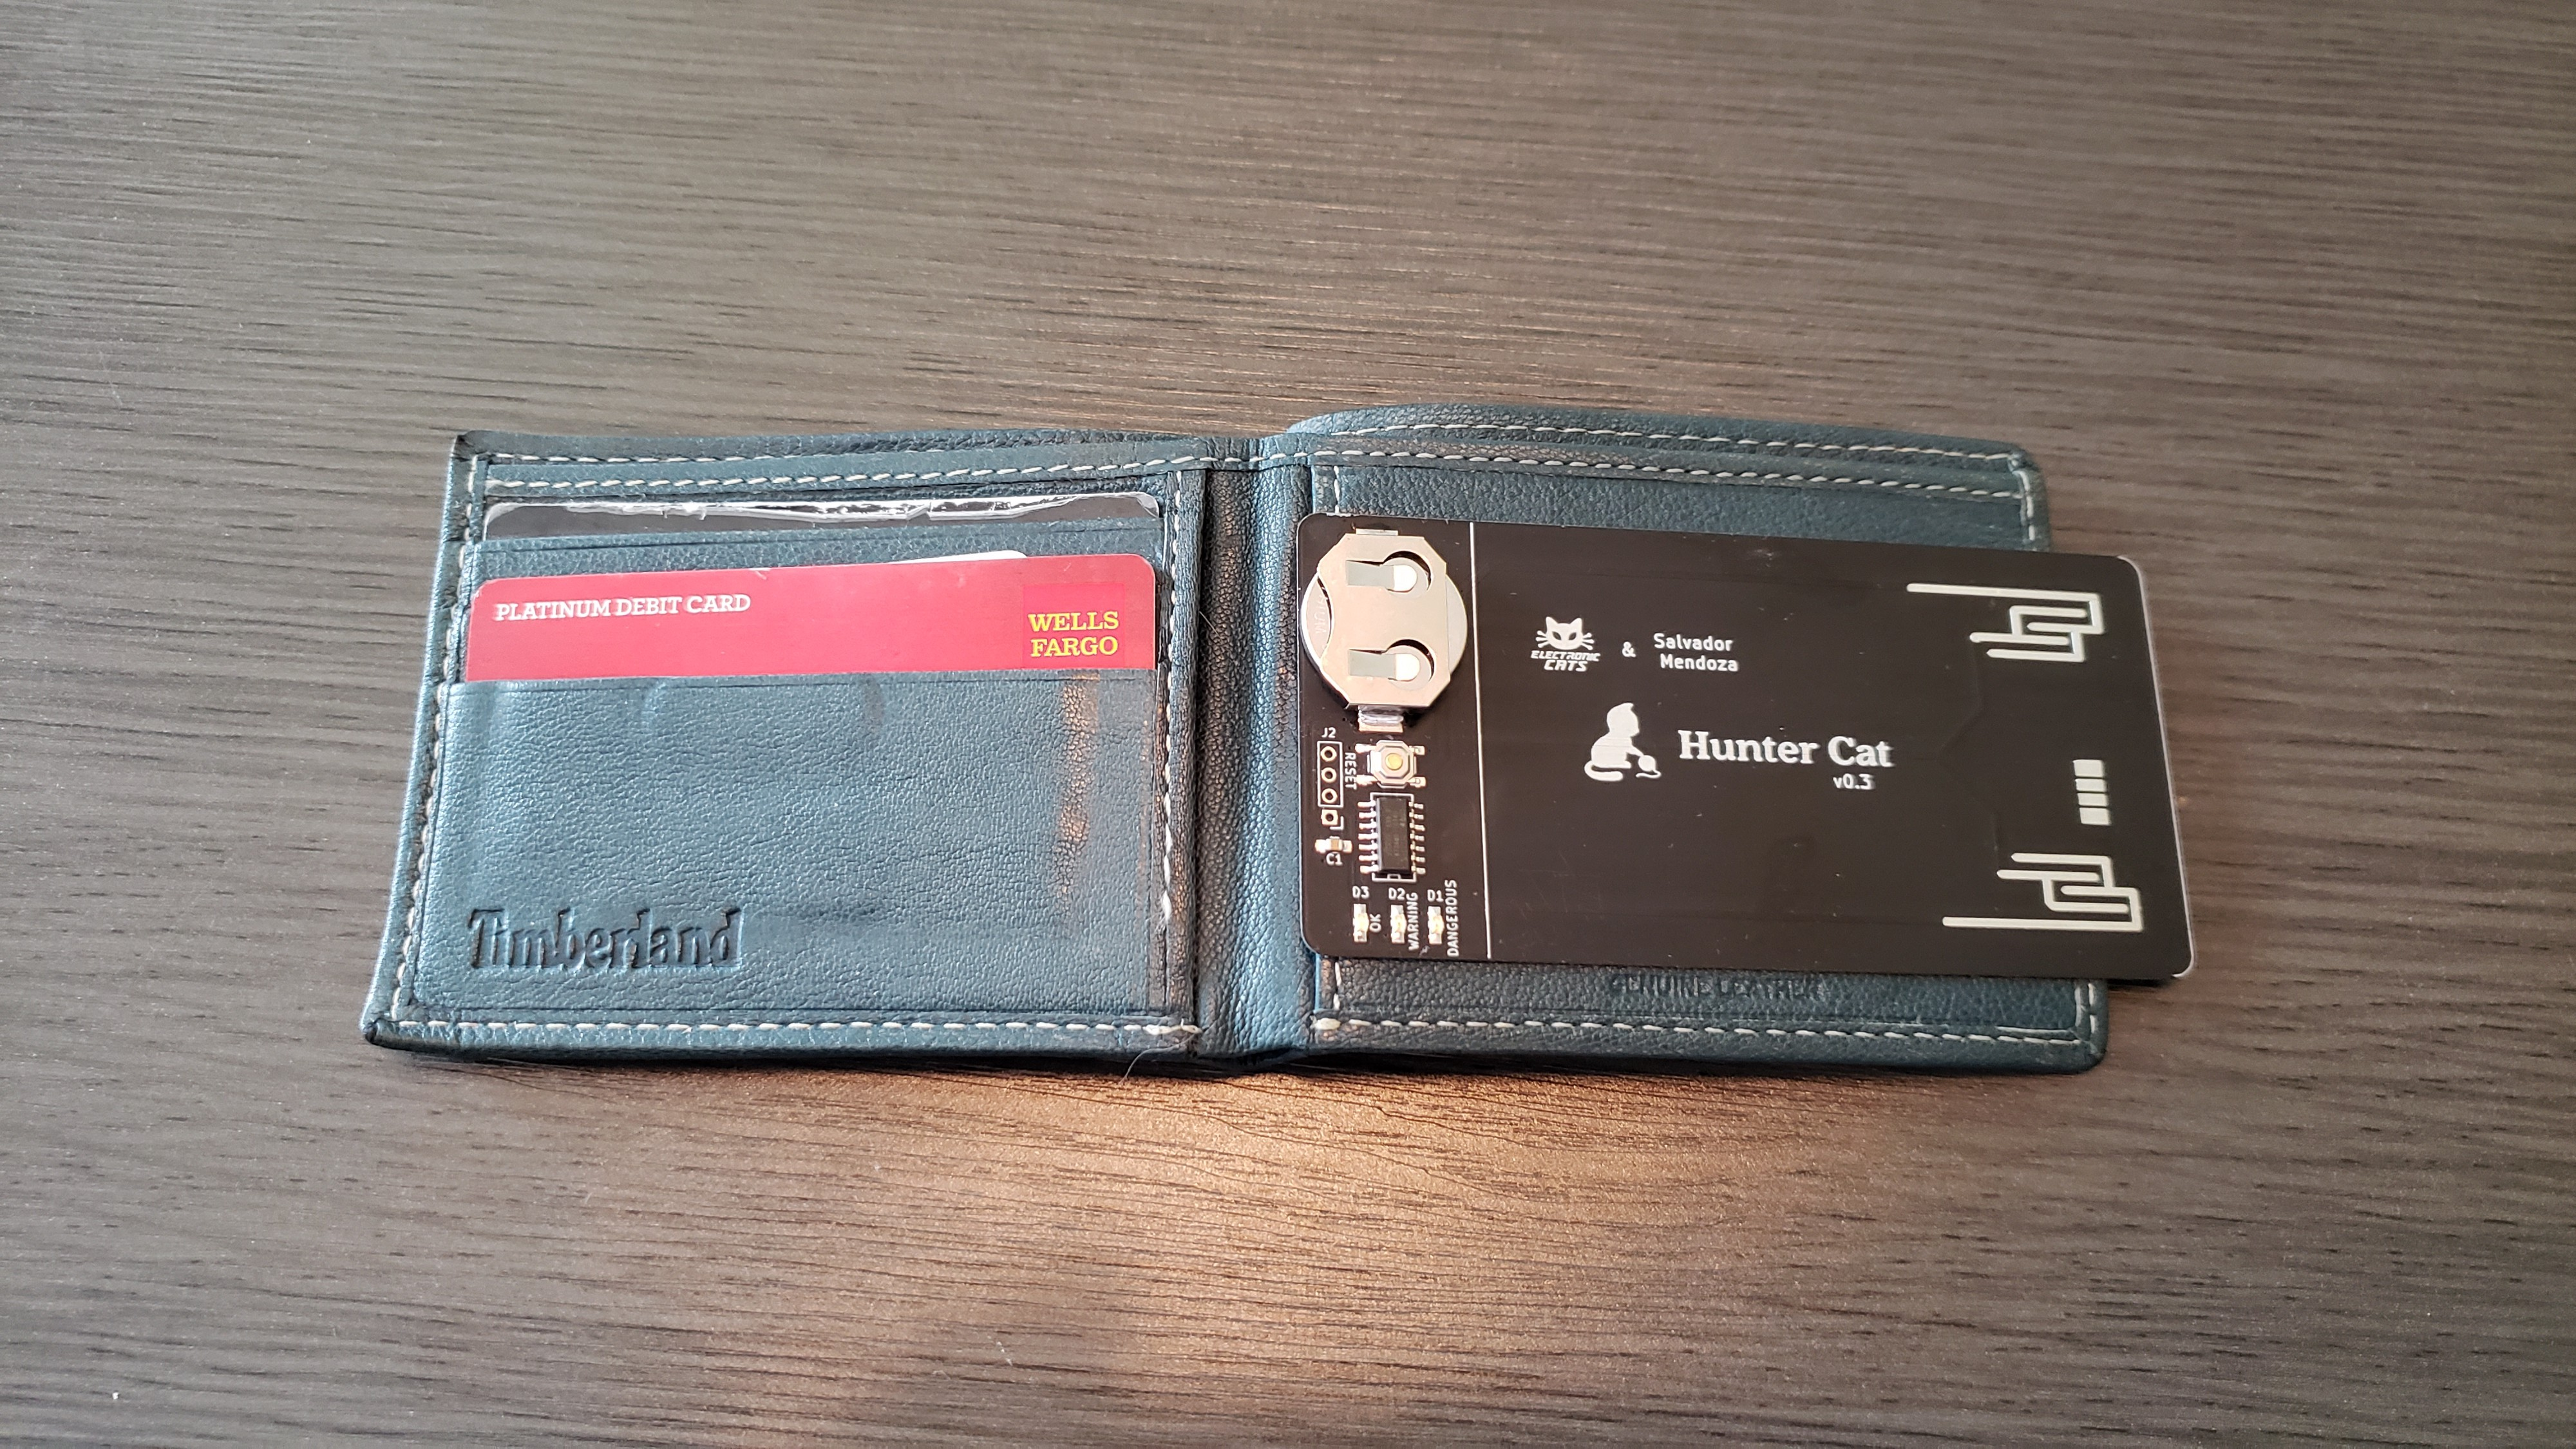 Review of the Hunter Cat Portable Credit Card Skimmer Detector